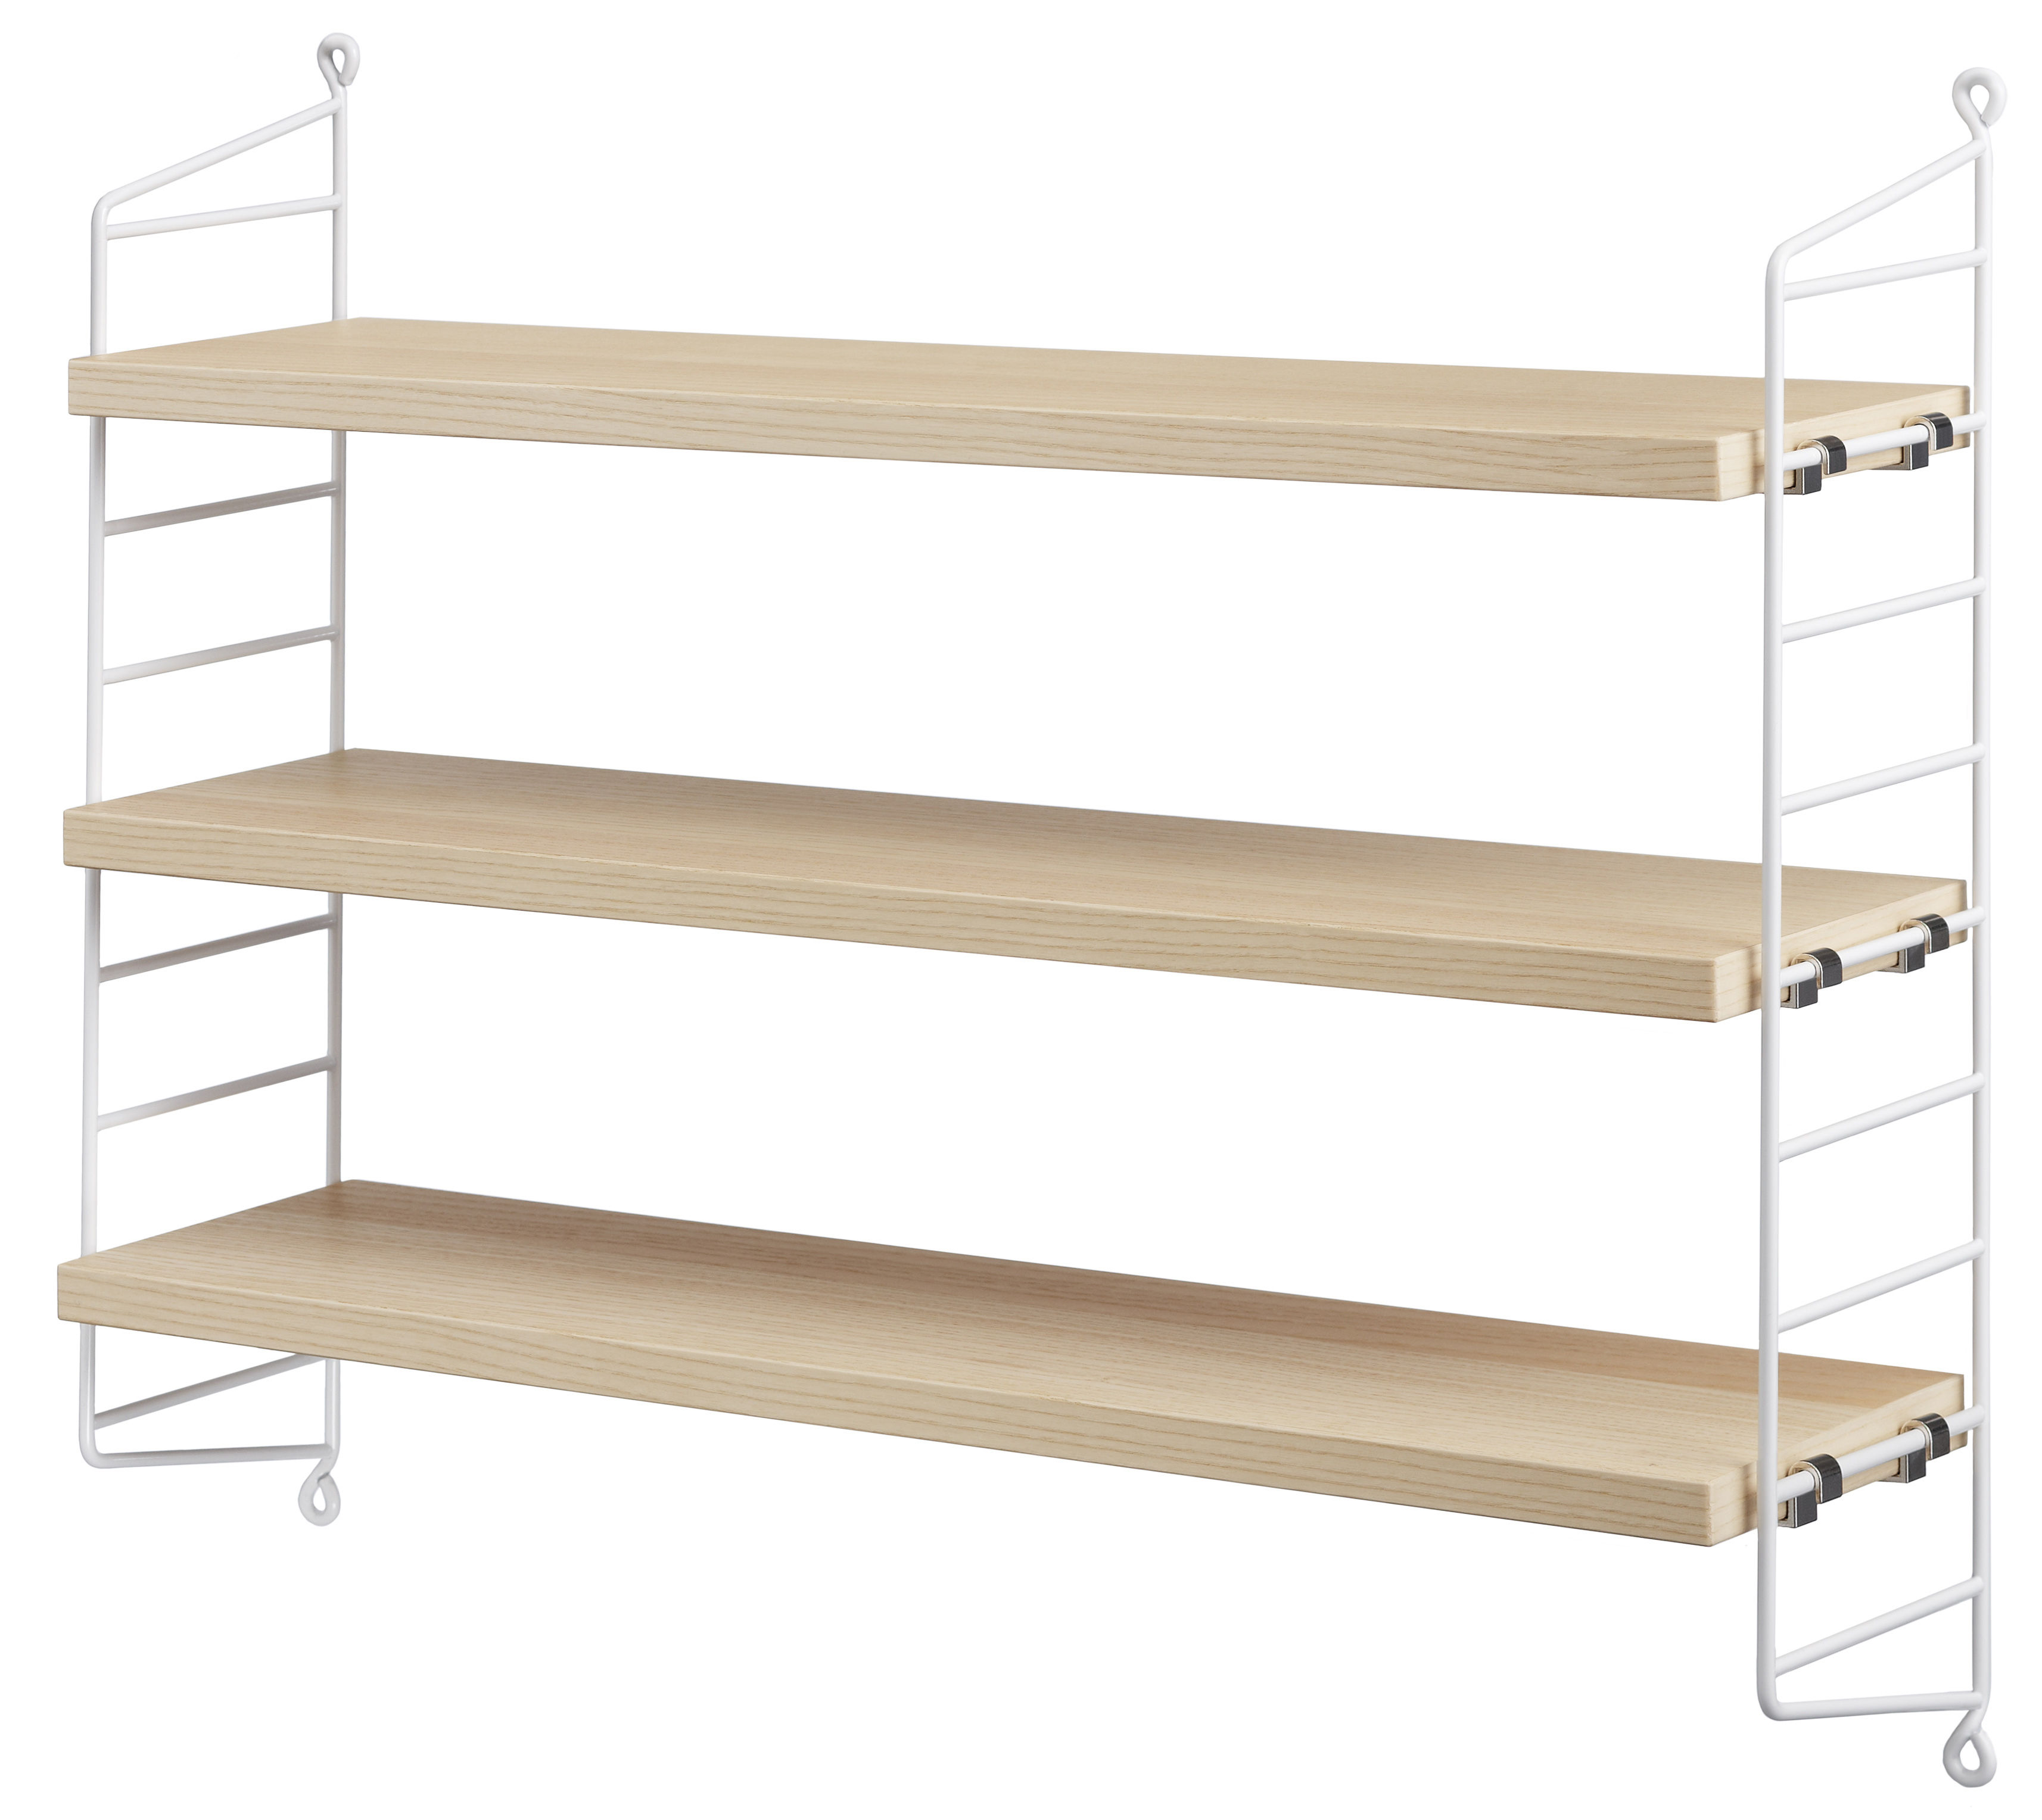 Furniture - Bookcases & Bookshelves - String Pocket Shelf by String Furniture - White / Ash shelves - Ash plywood, Lacquered steel